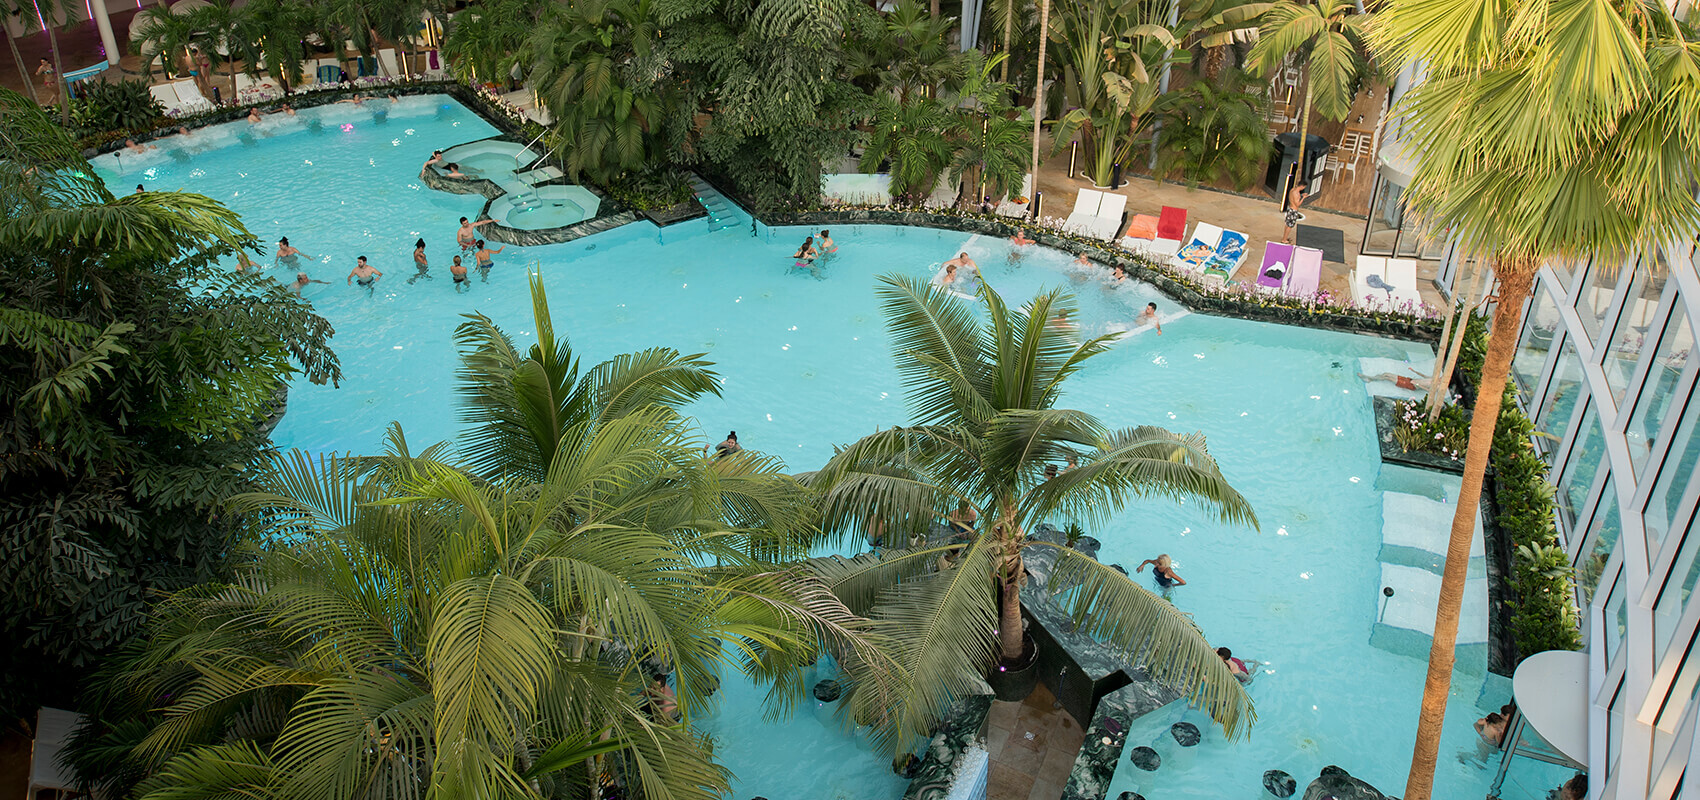 therme pools